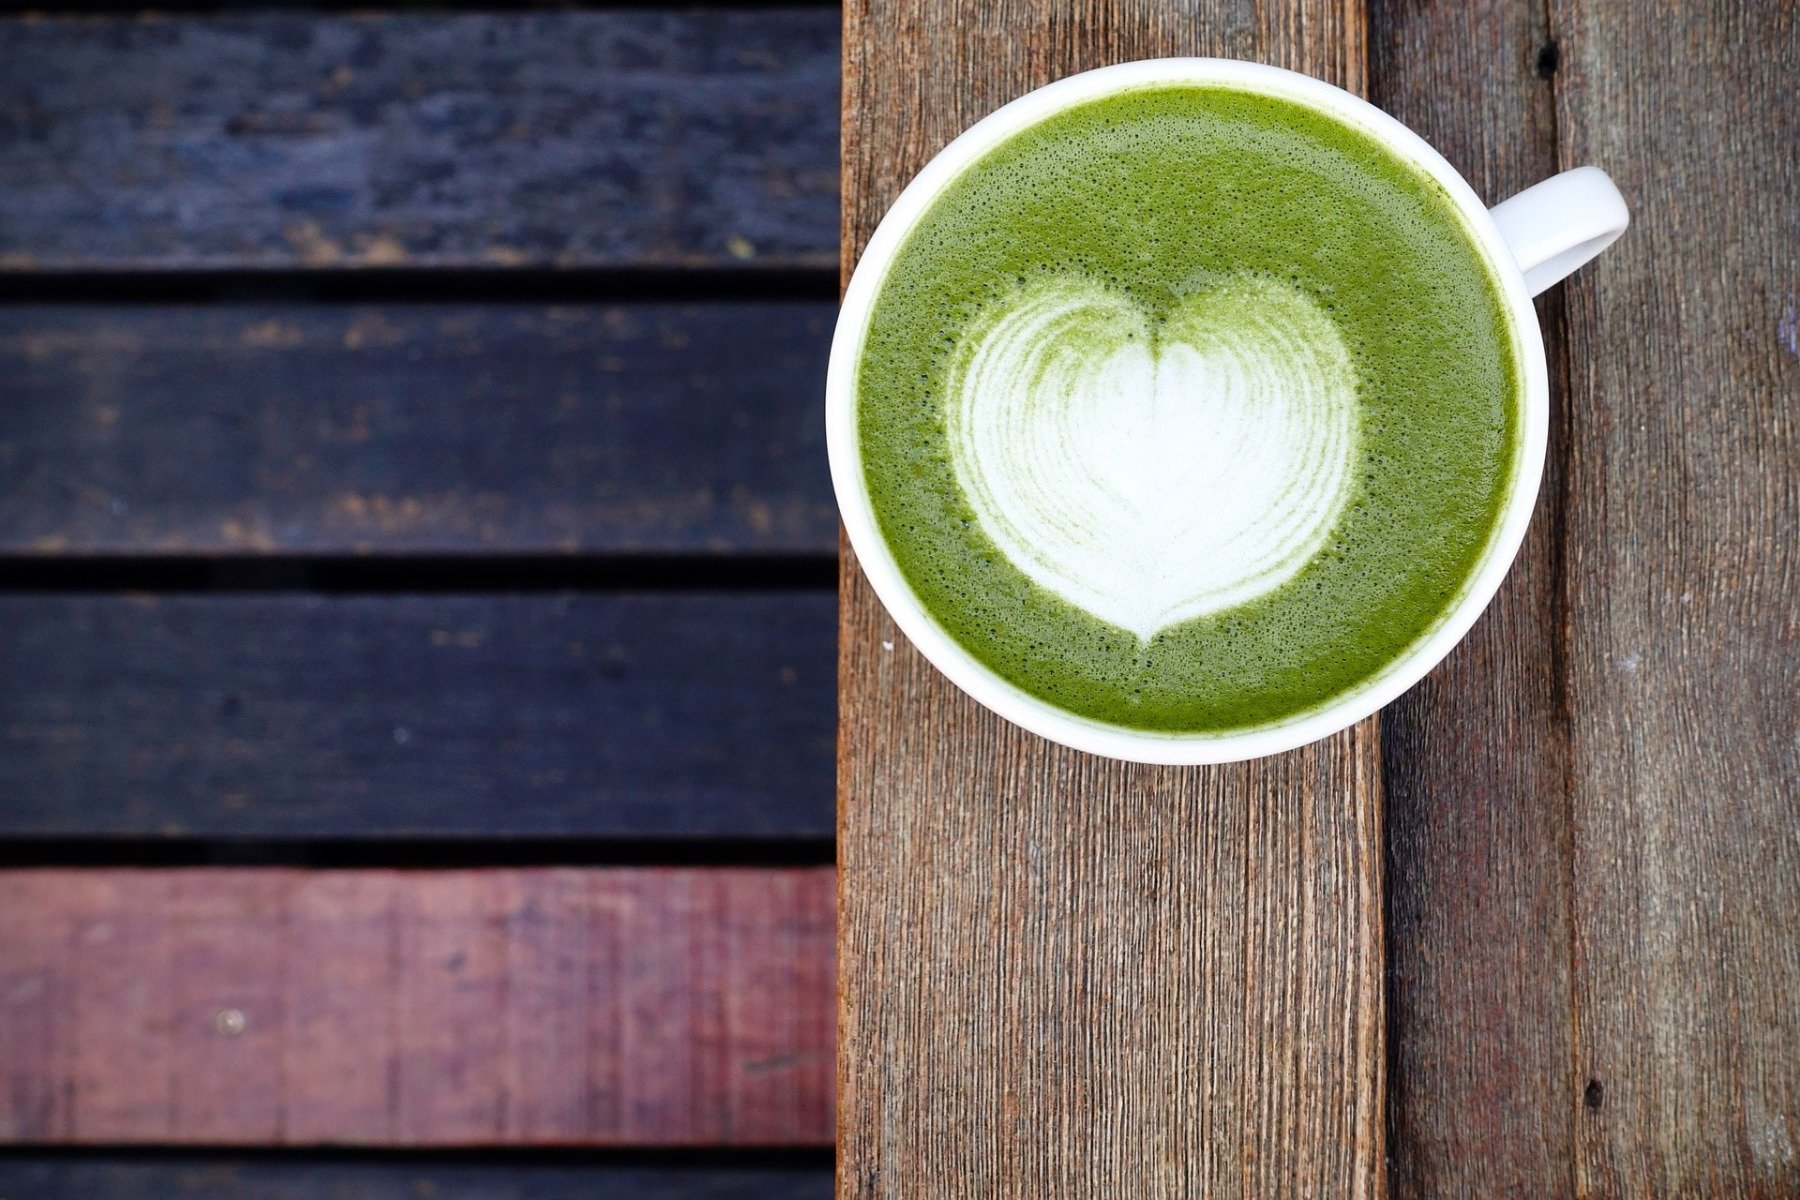 Matcha tea - supports heart function and weight loss